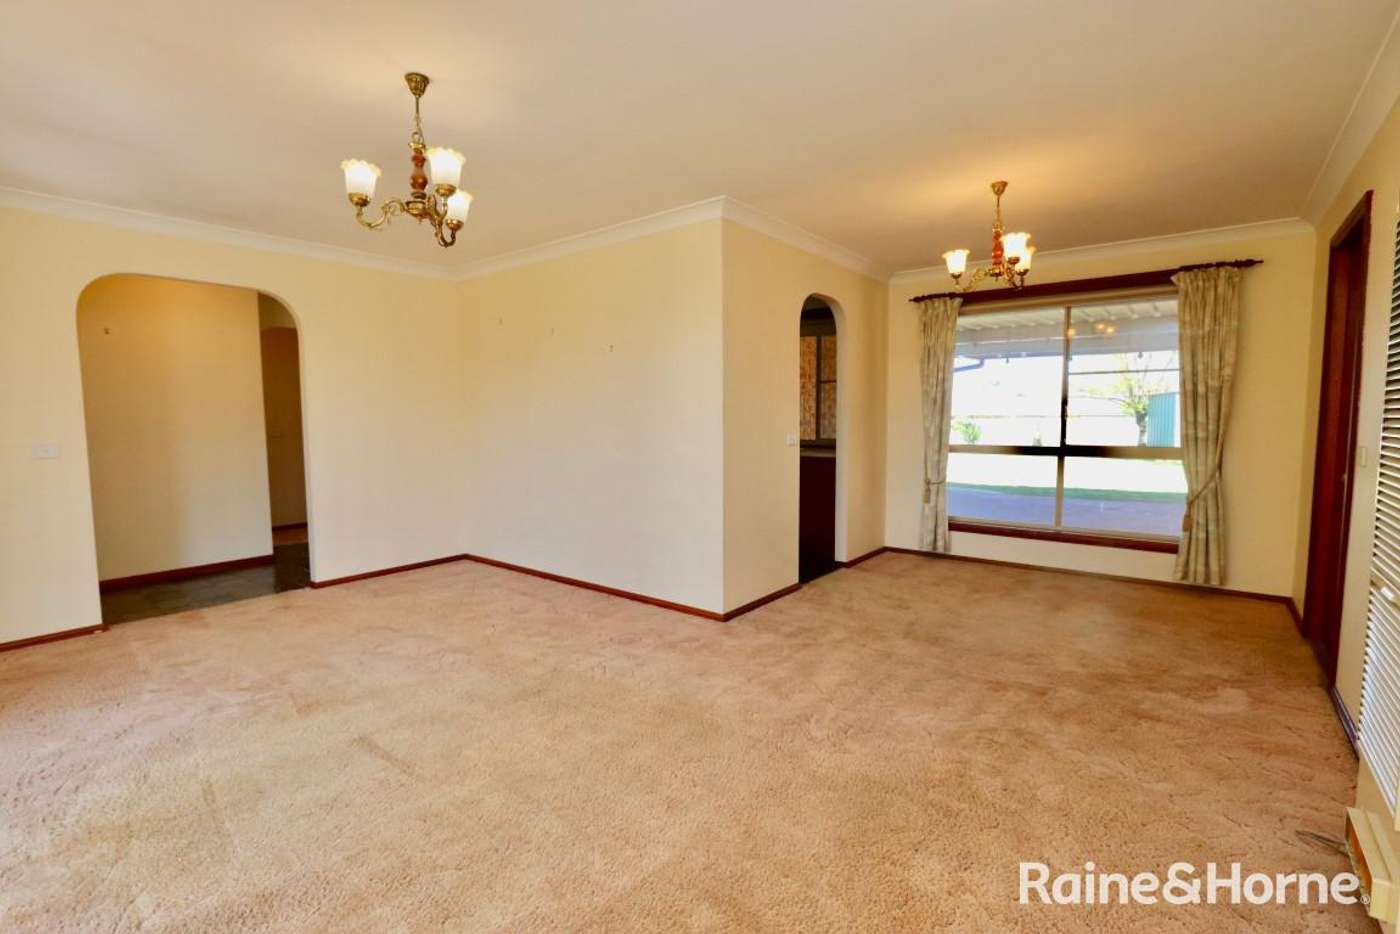 Sixth view of Homely house listing, 47 Freestone Way, Bathurst NSW 2795